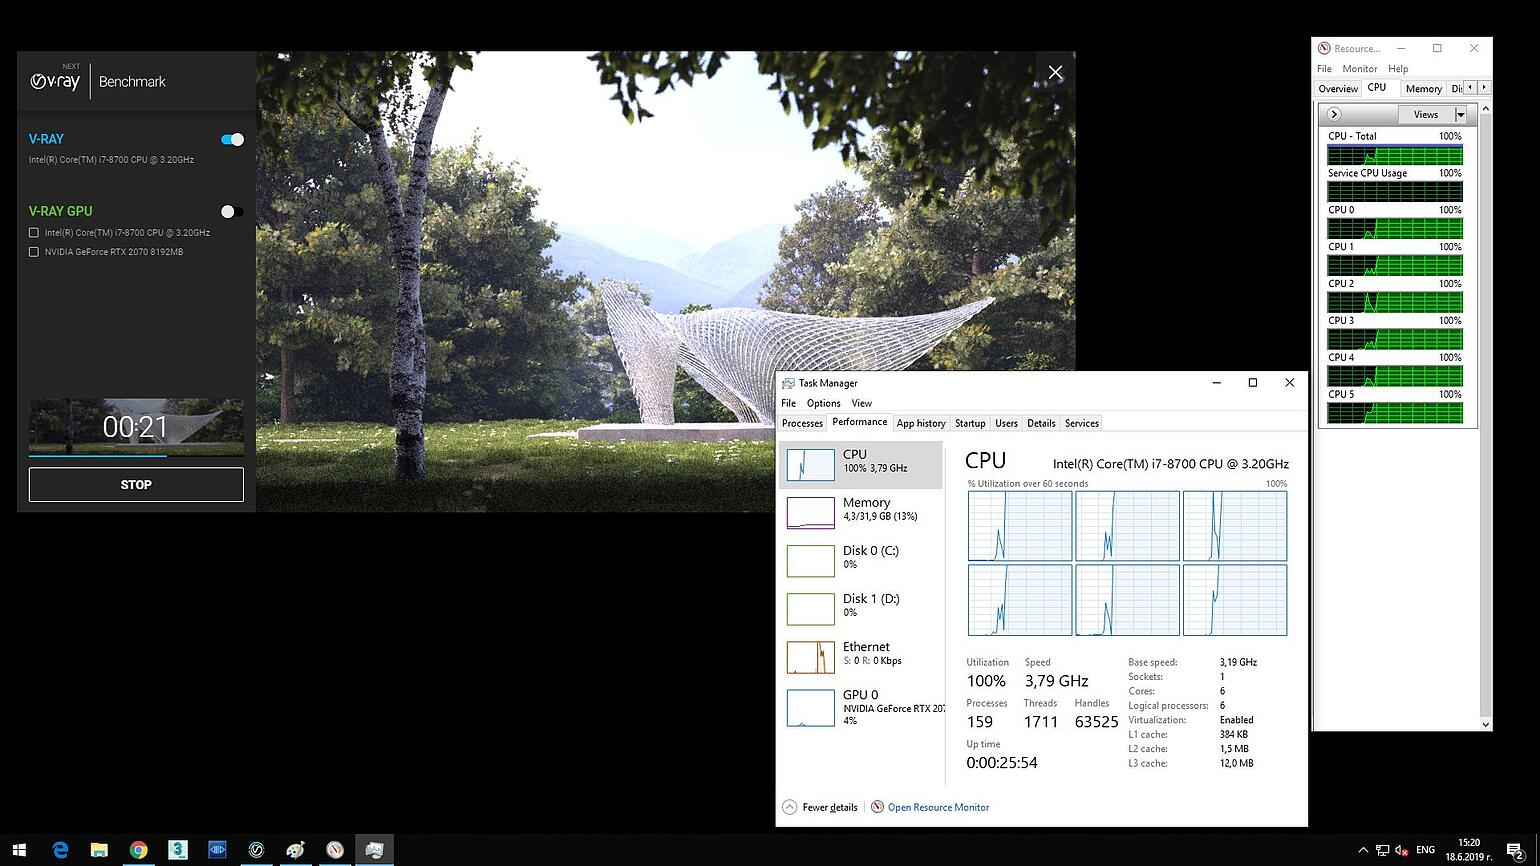 Screenshot of V-Ray Next Benchmark and opened Task Manager showing 6 CPU and disabled hyperthreading, processing the image.